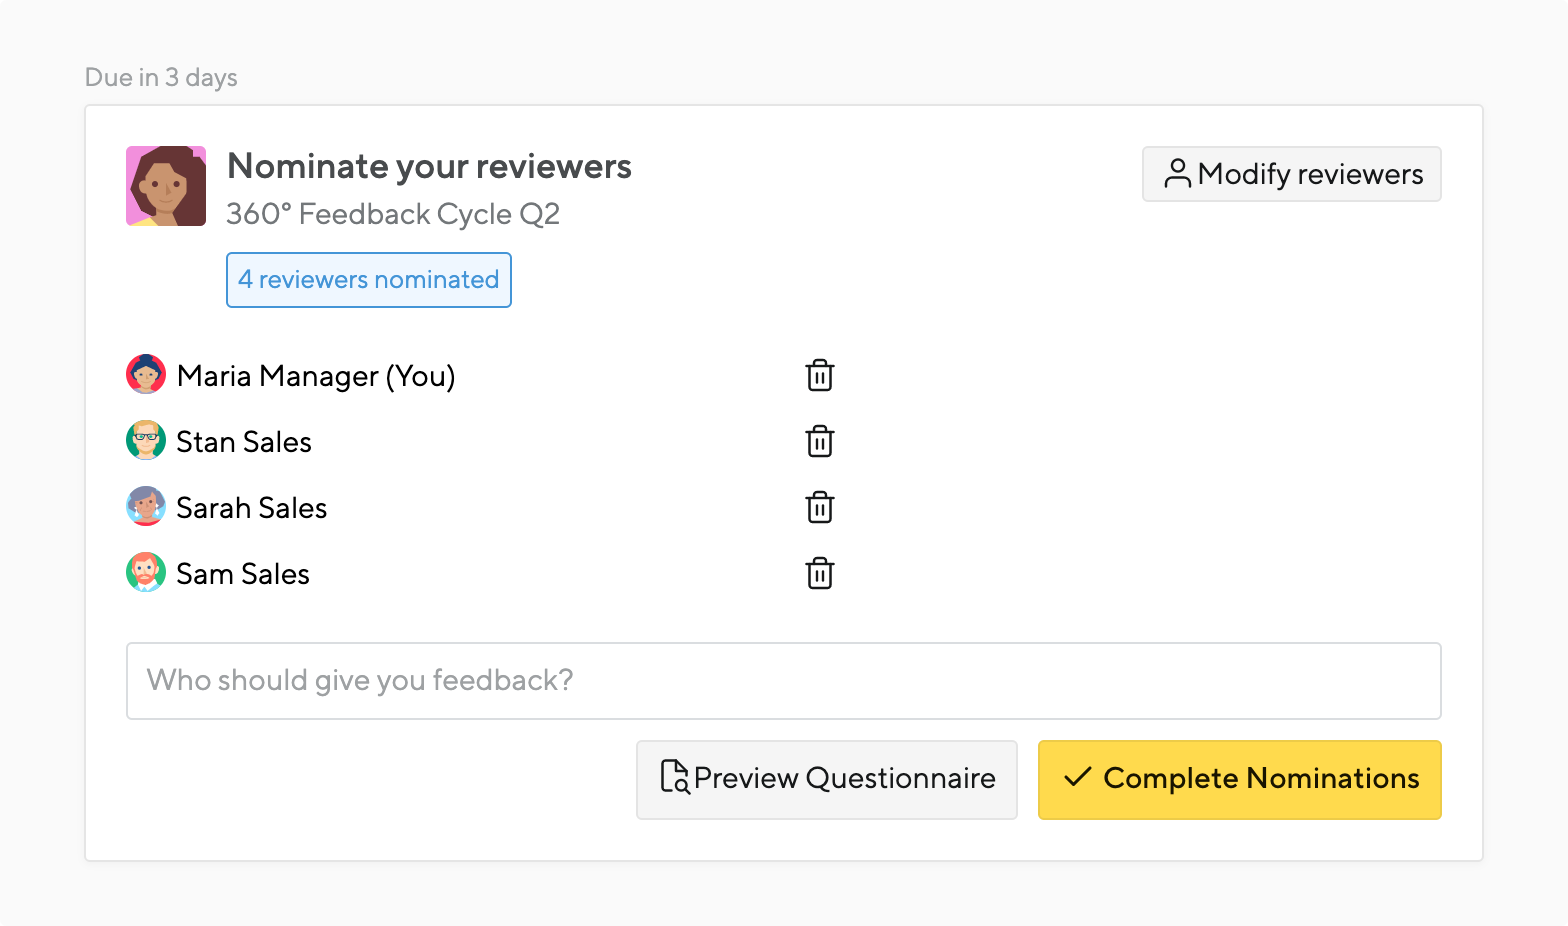 reviewer nominations in a 360 feedback process